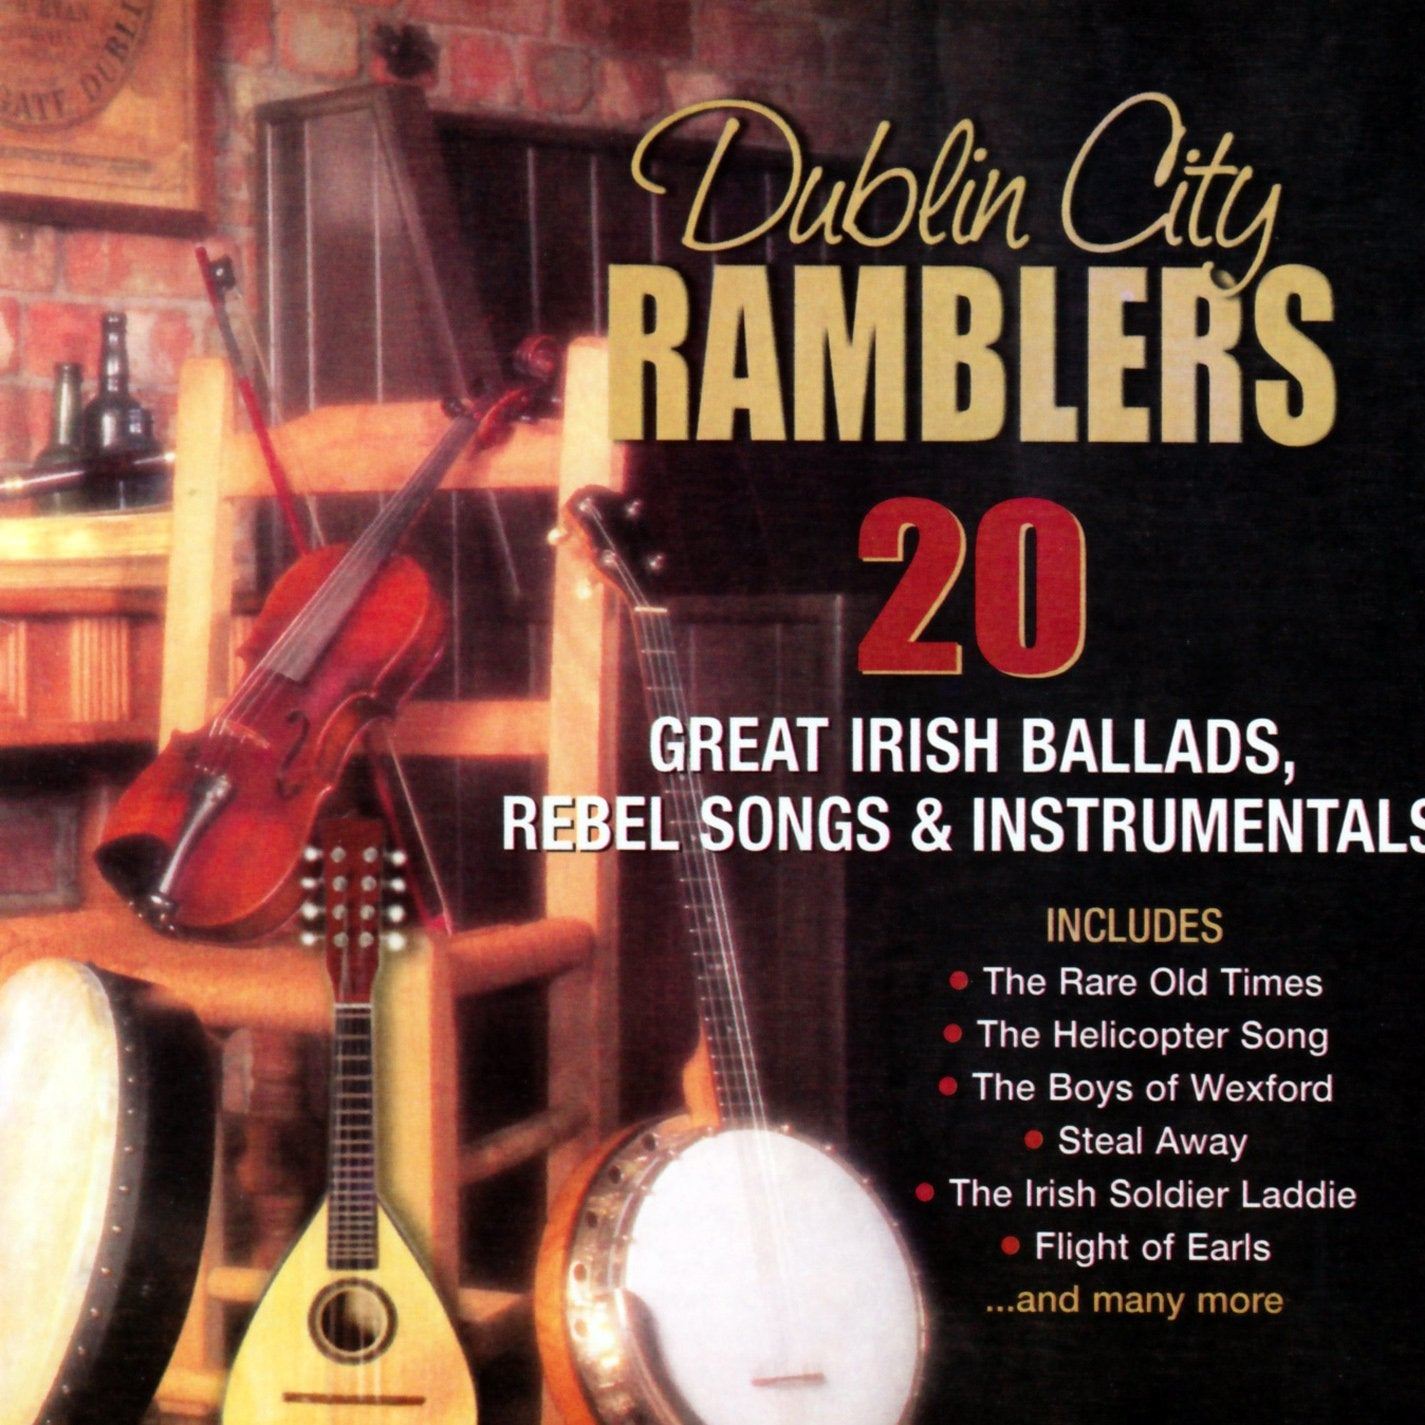 20 Great Irish Ballads, Rebel Songs and Instrumentals: DUBLIN CITY RAMBLERS [CD]